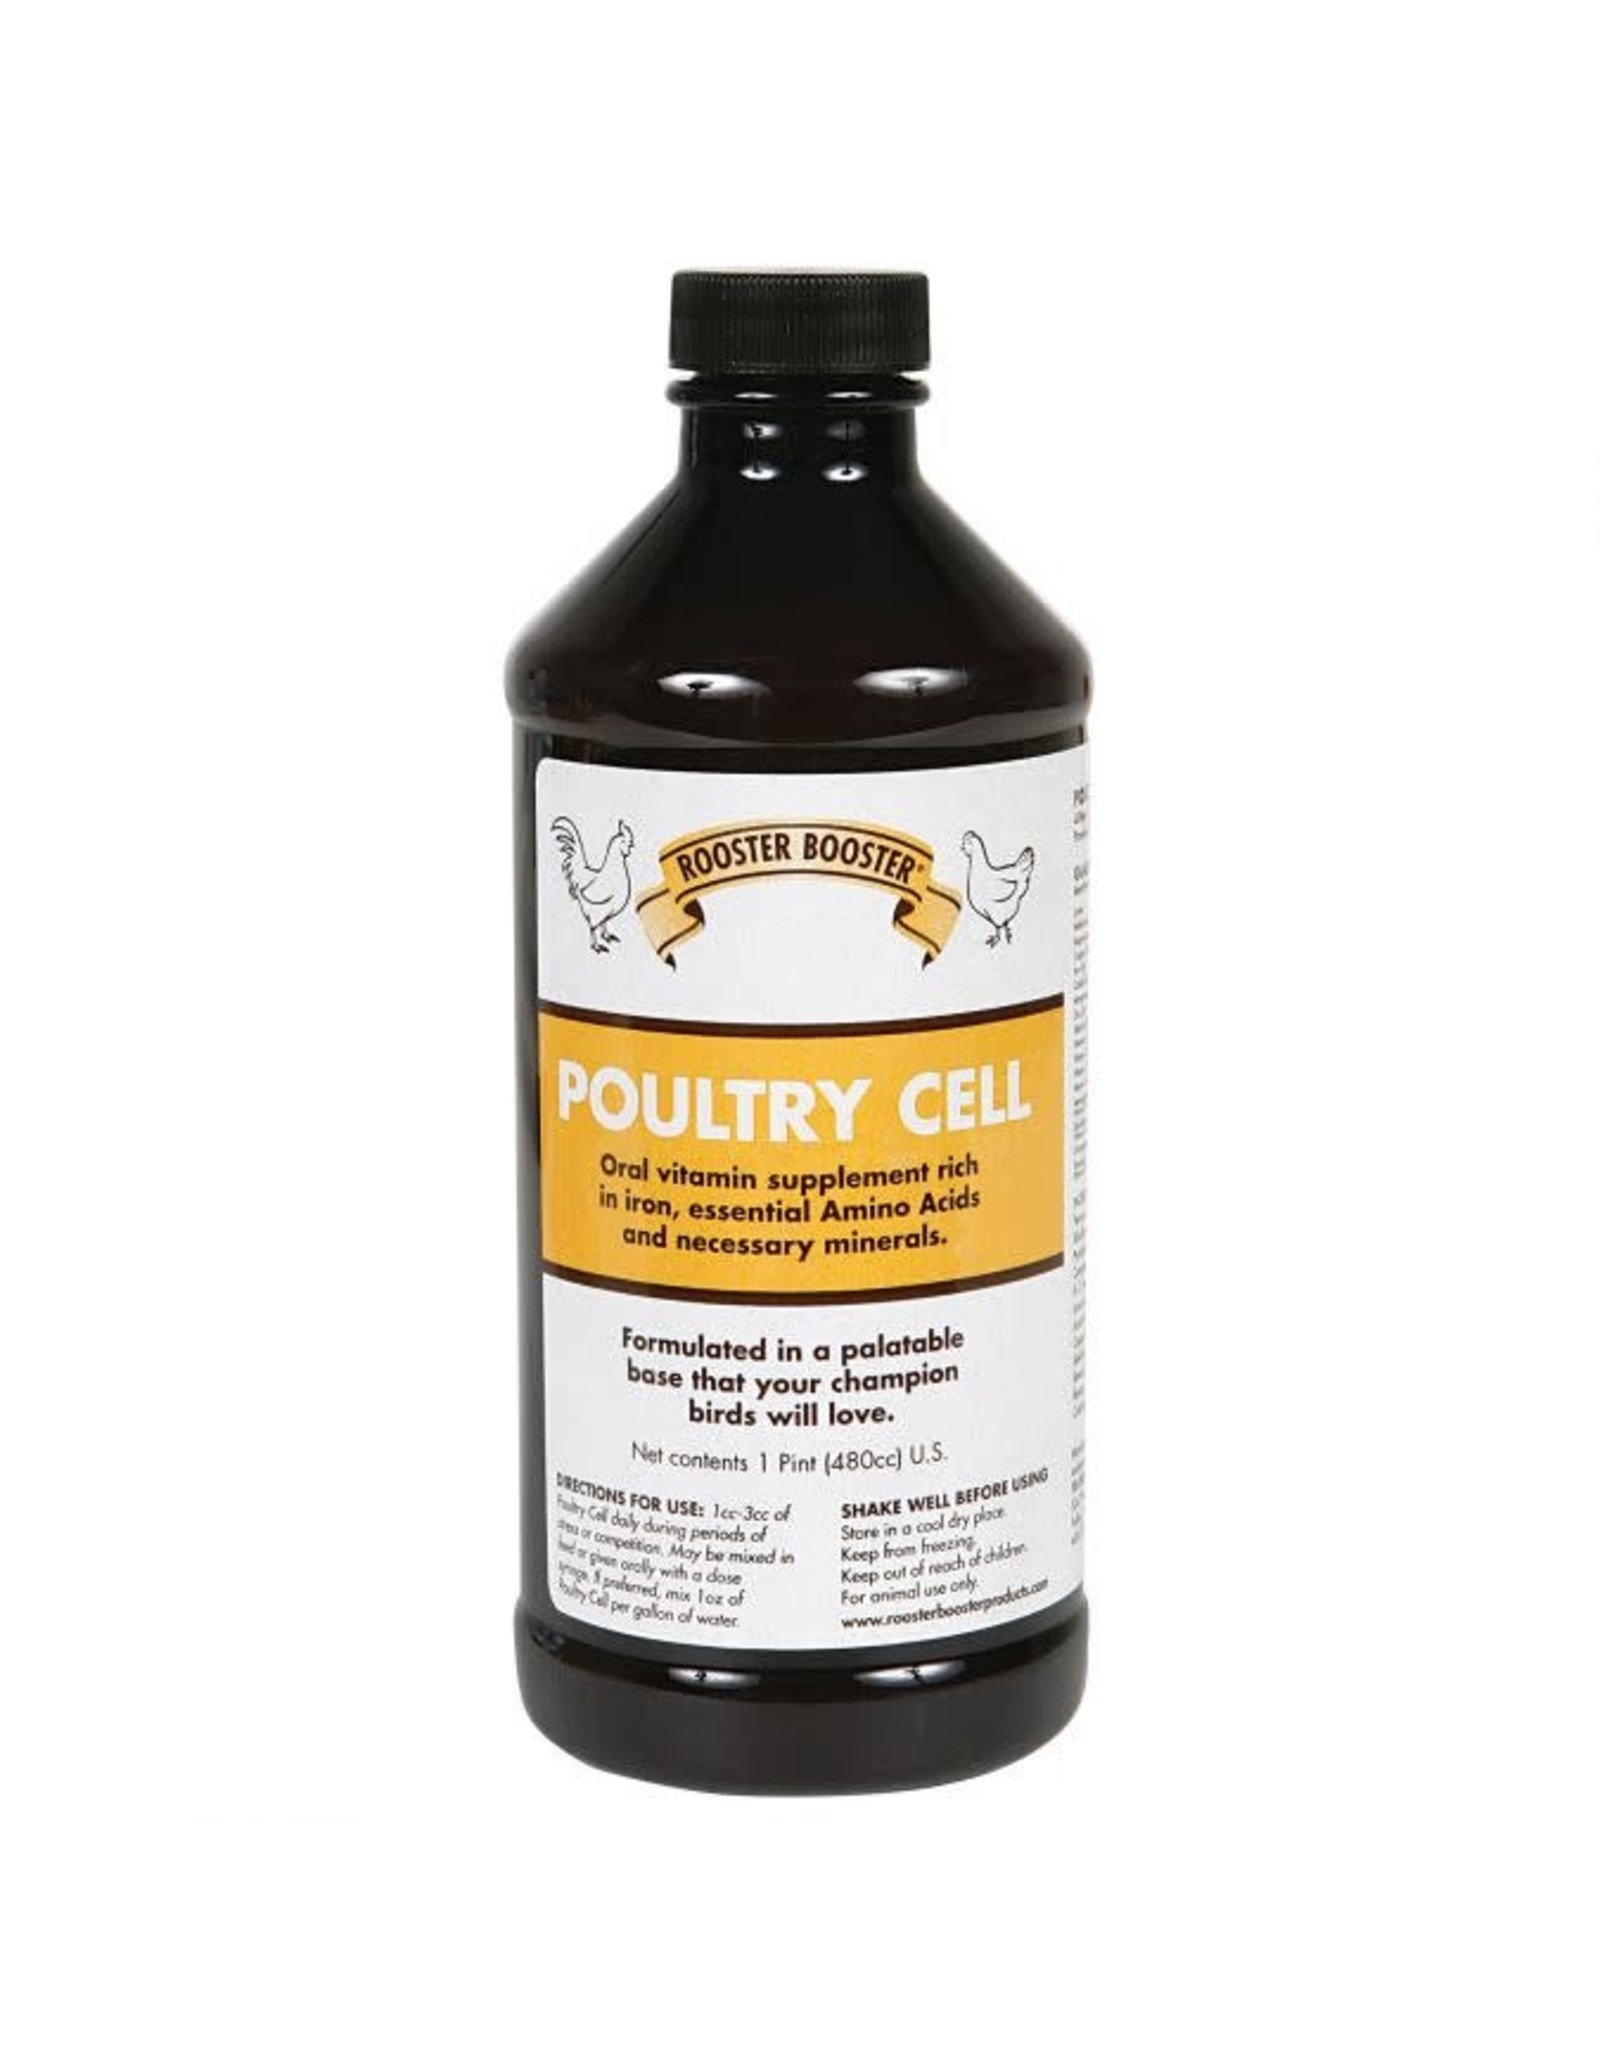 Rooster Booster Poultry Cell 16oz